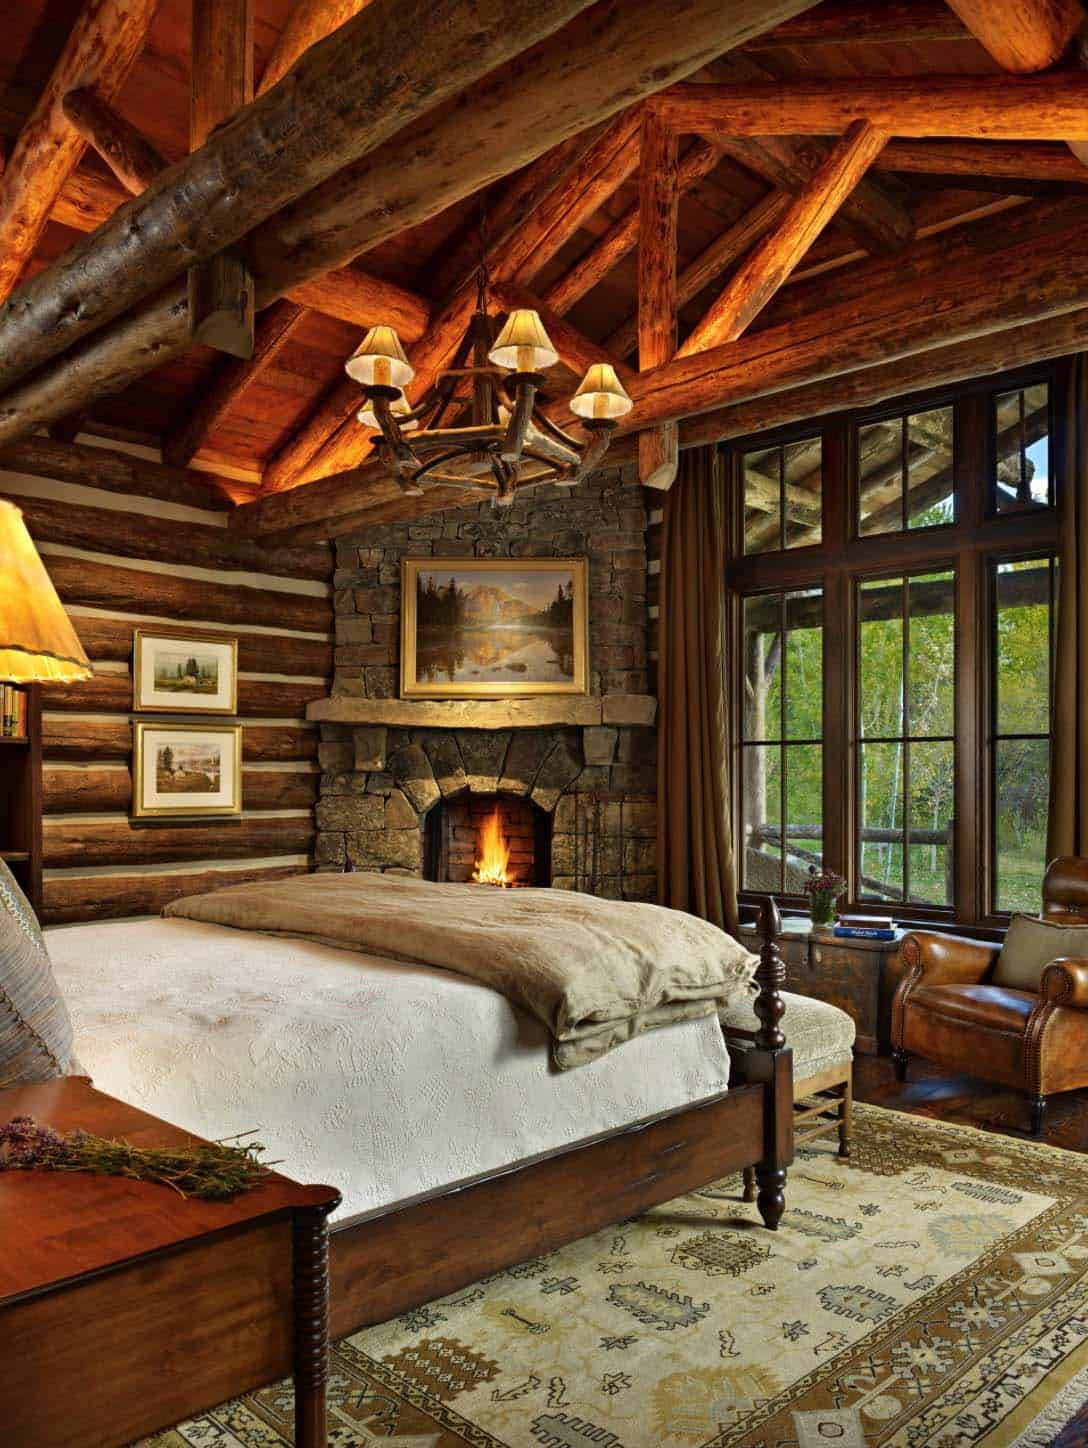 Brilliant 40 Amazing Rustic Bedrooms Styled To Feel Like A Cozy Getaway Download Free Architecture Designs Rallybritishbridgeorg